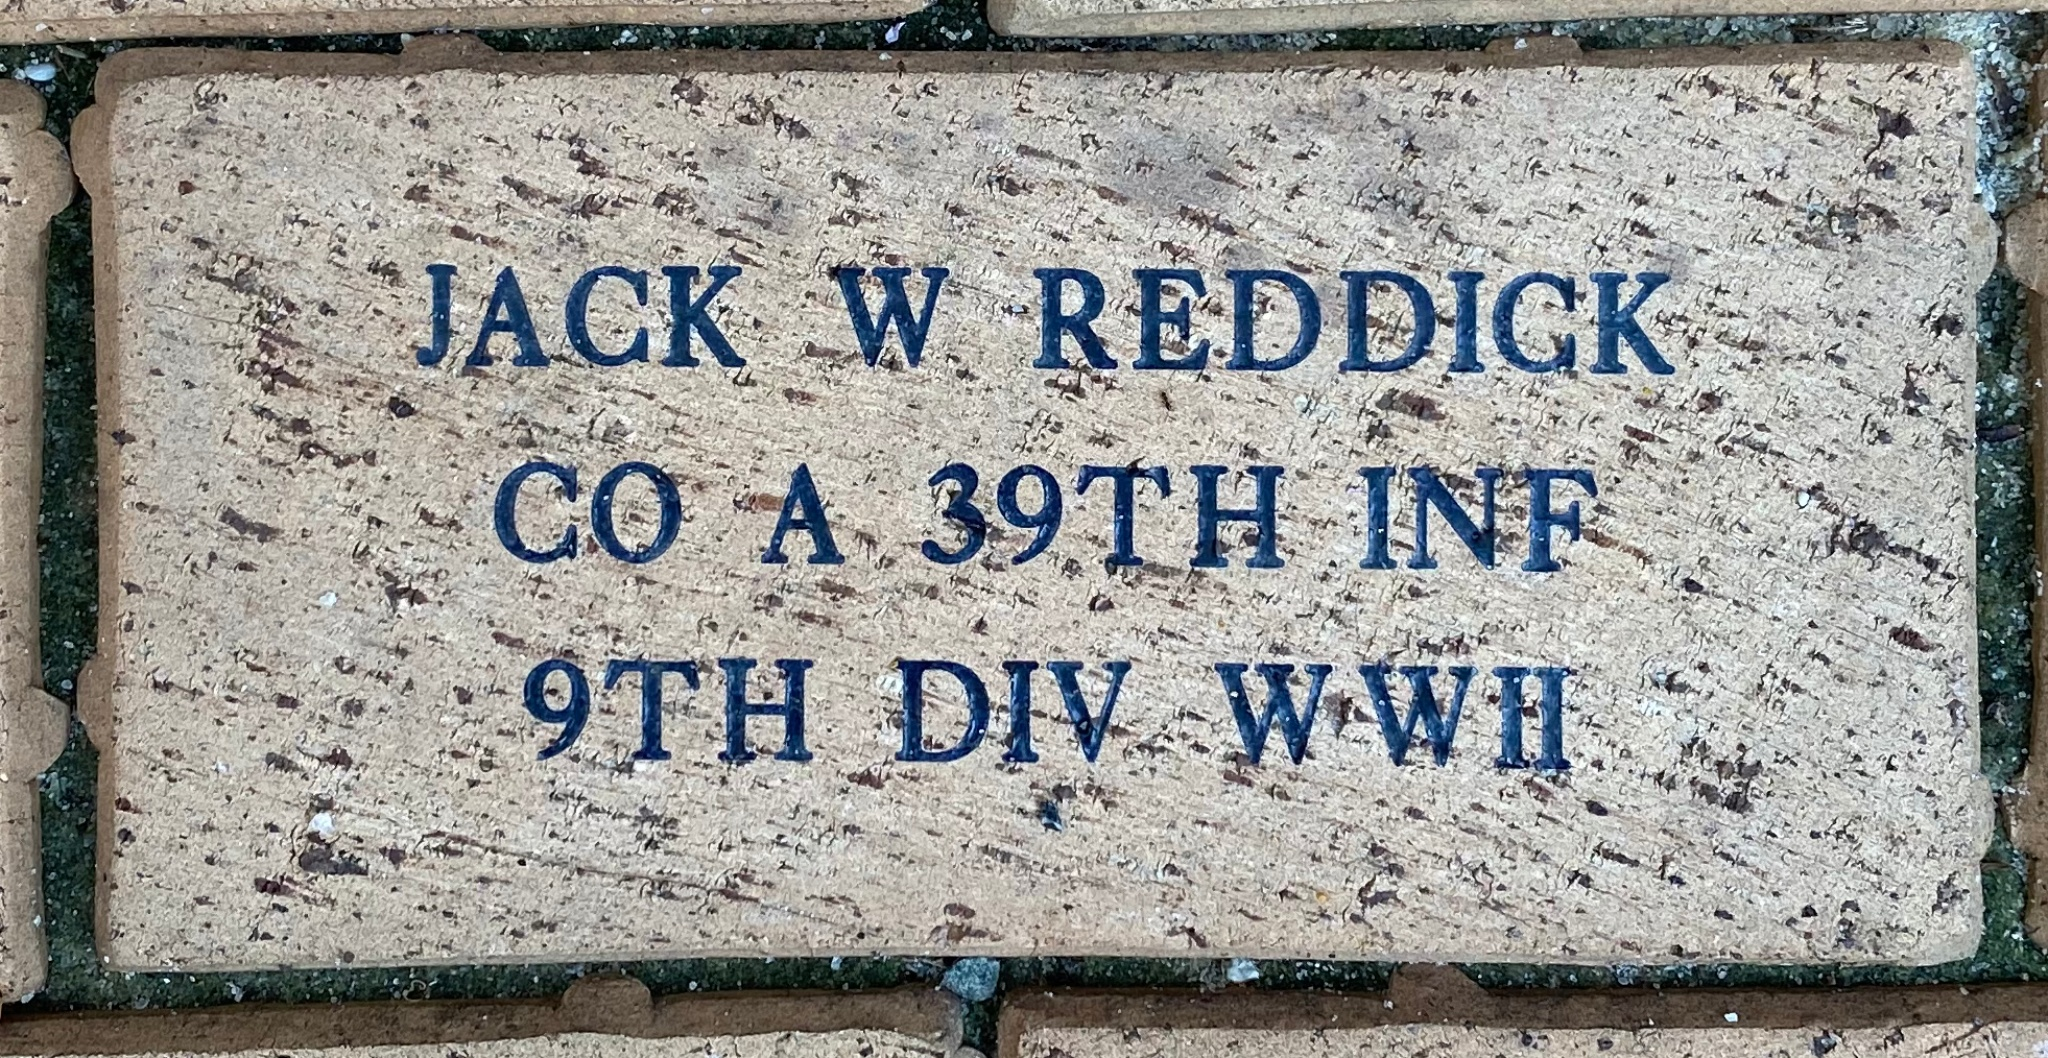 JACK W REDDICK CO A 39TH INF 9TH DIV WWII